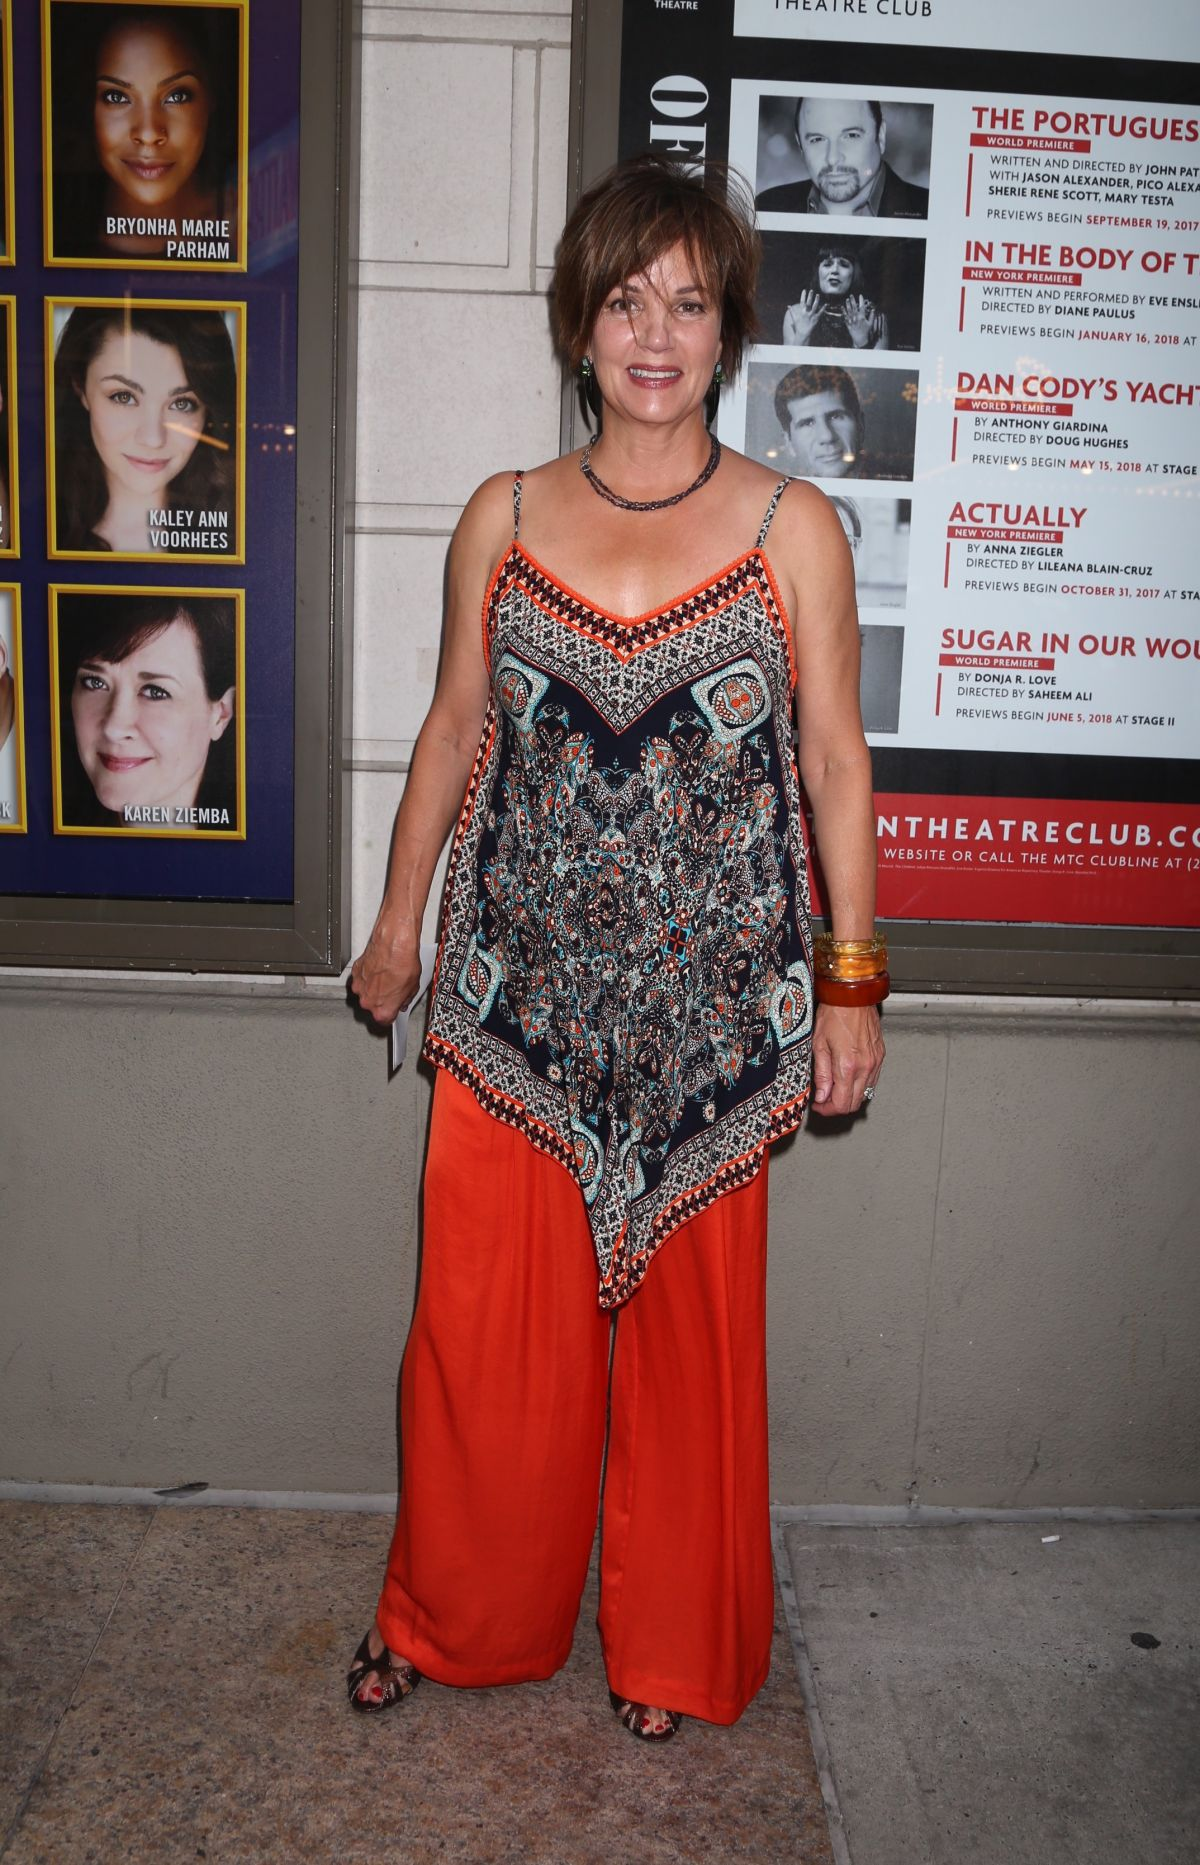 MARGARET COLIN at Prince of Broadway Premiere in New York 08/24/2017